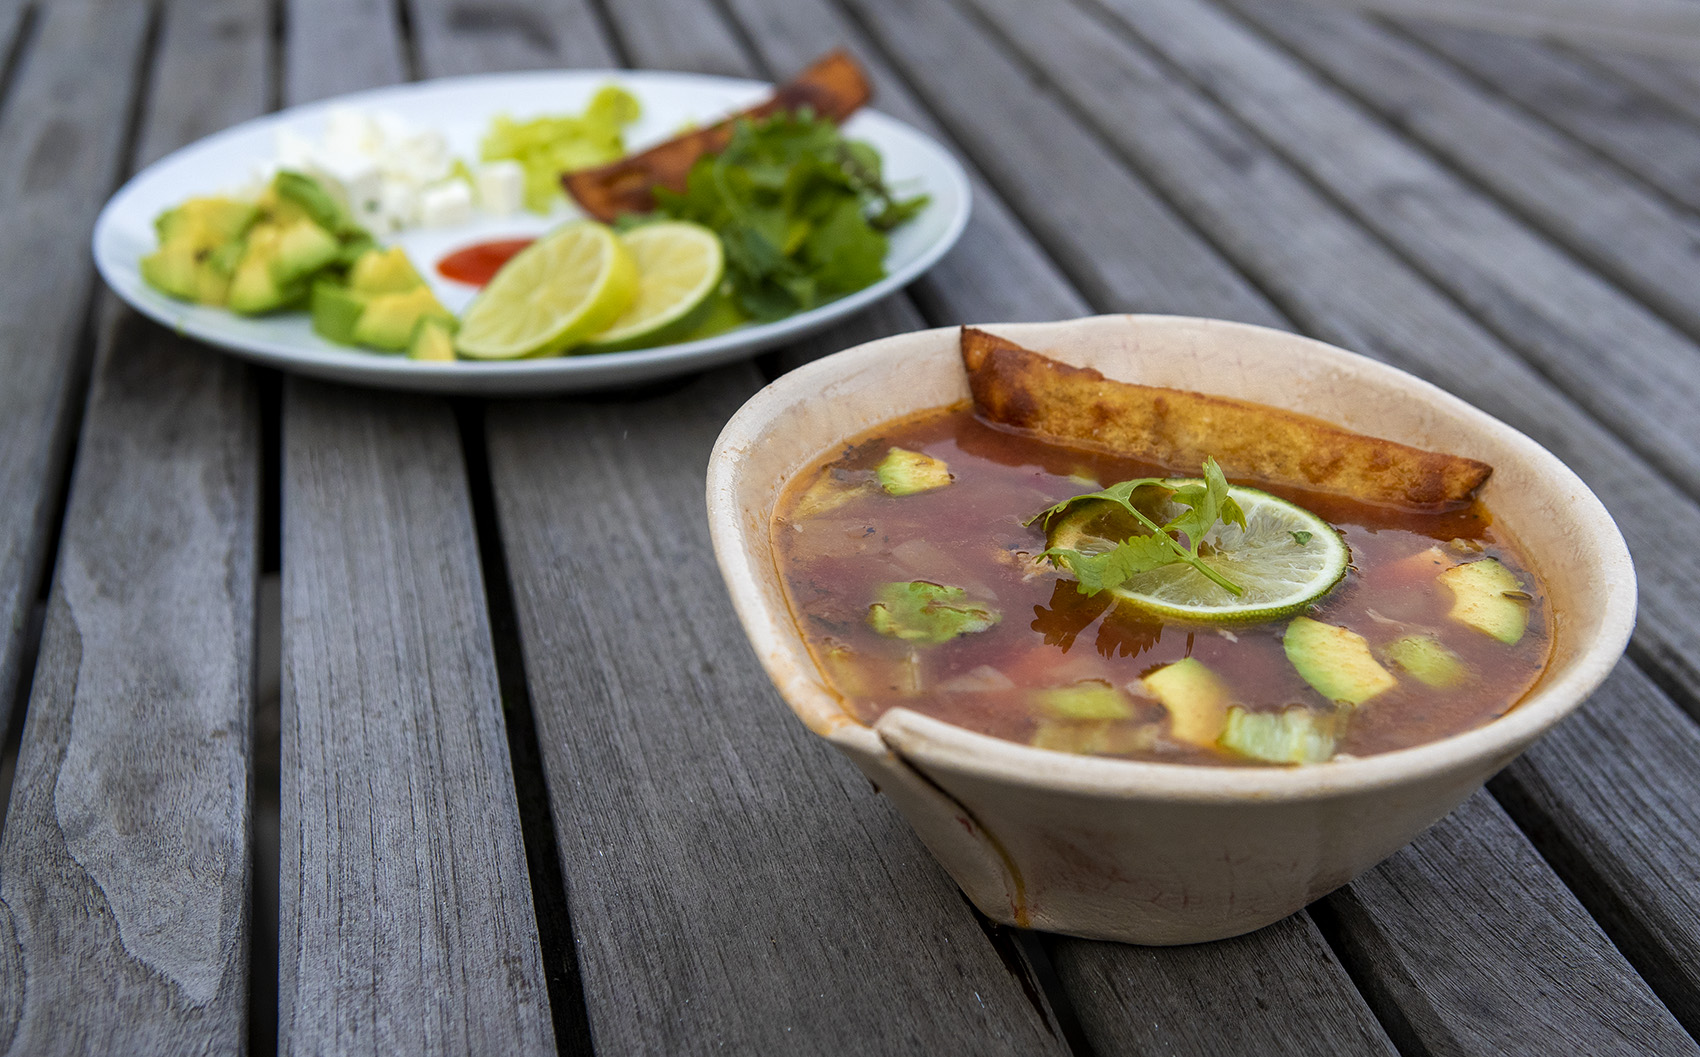 Winter Soups To Warm You Up When It's Cold Outside